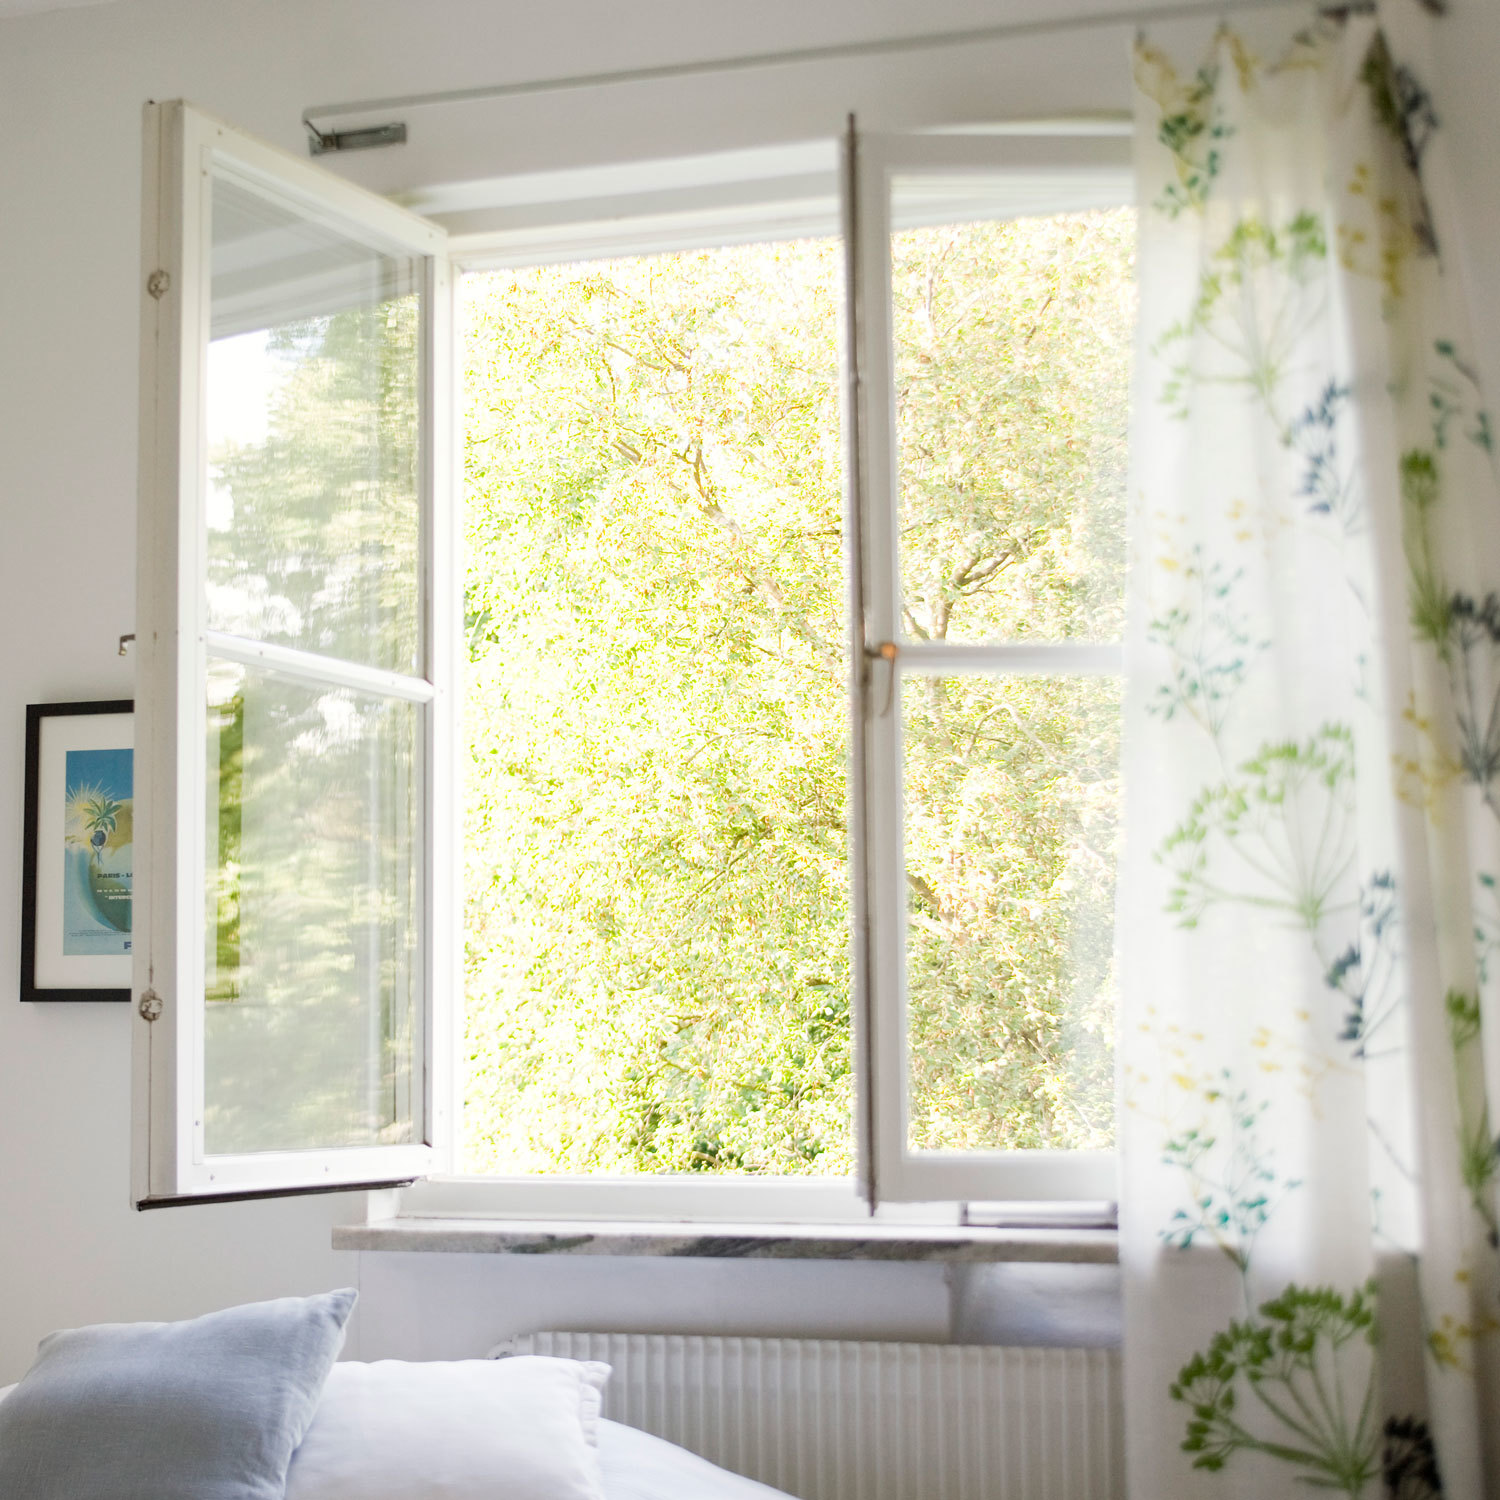 photo of open window with tree outside